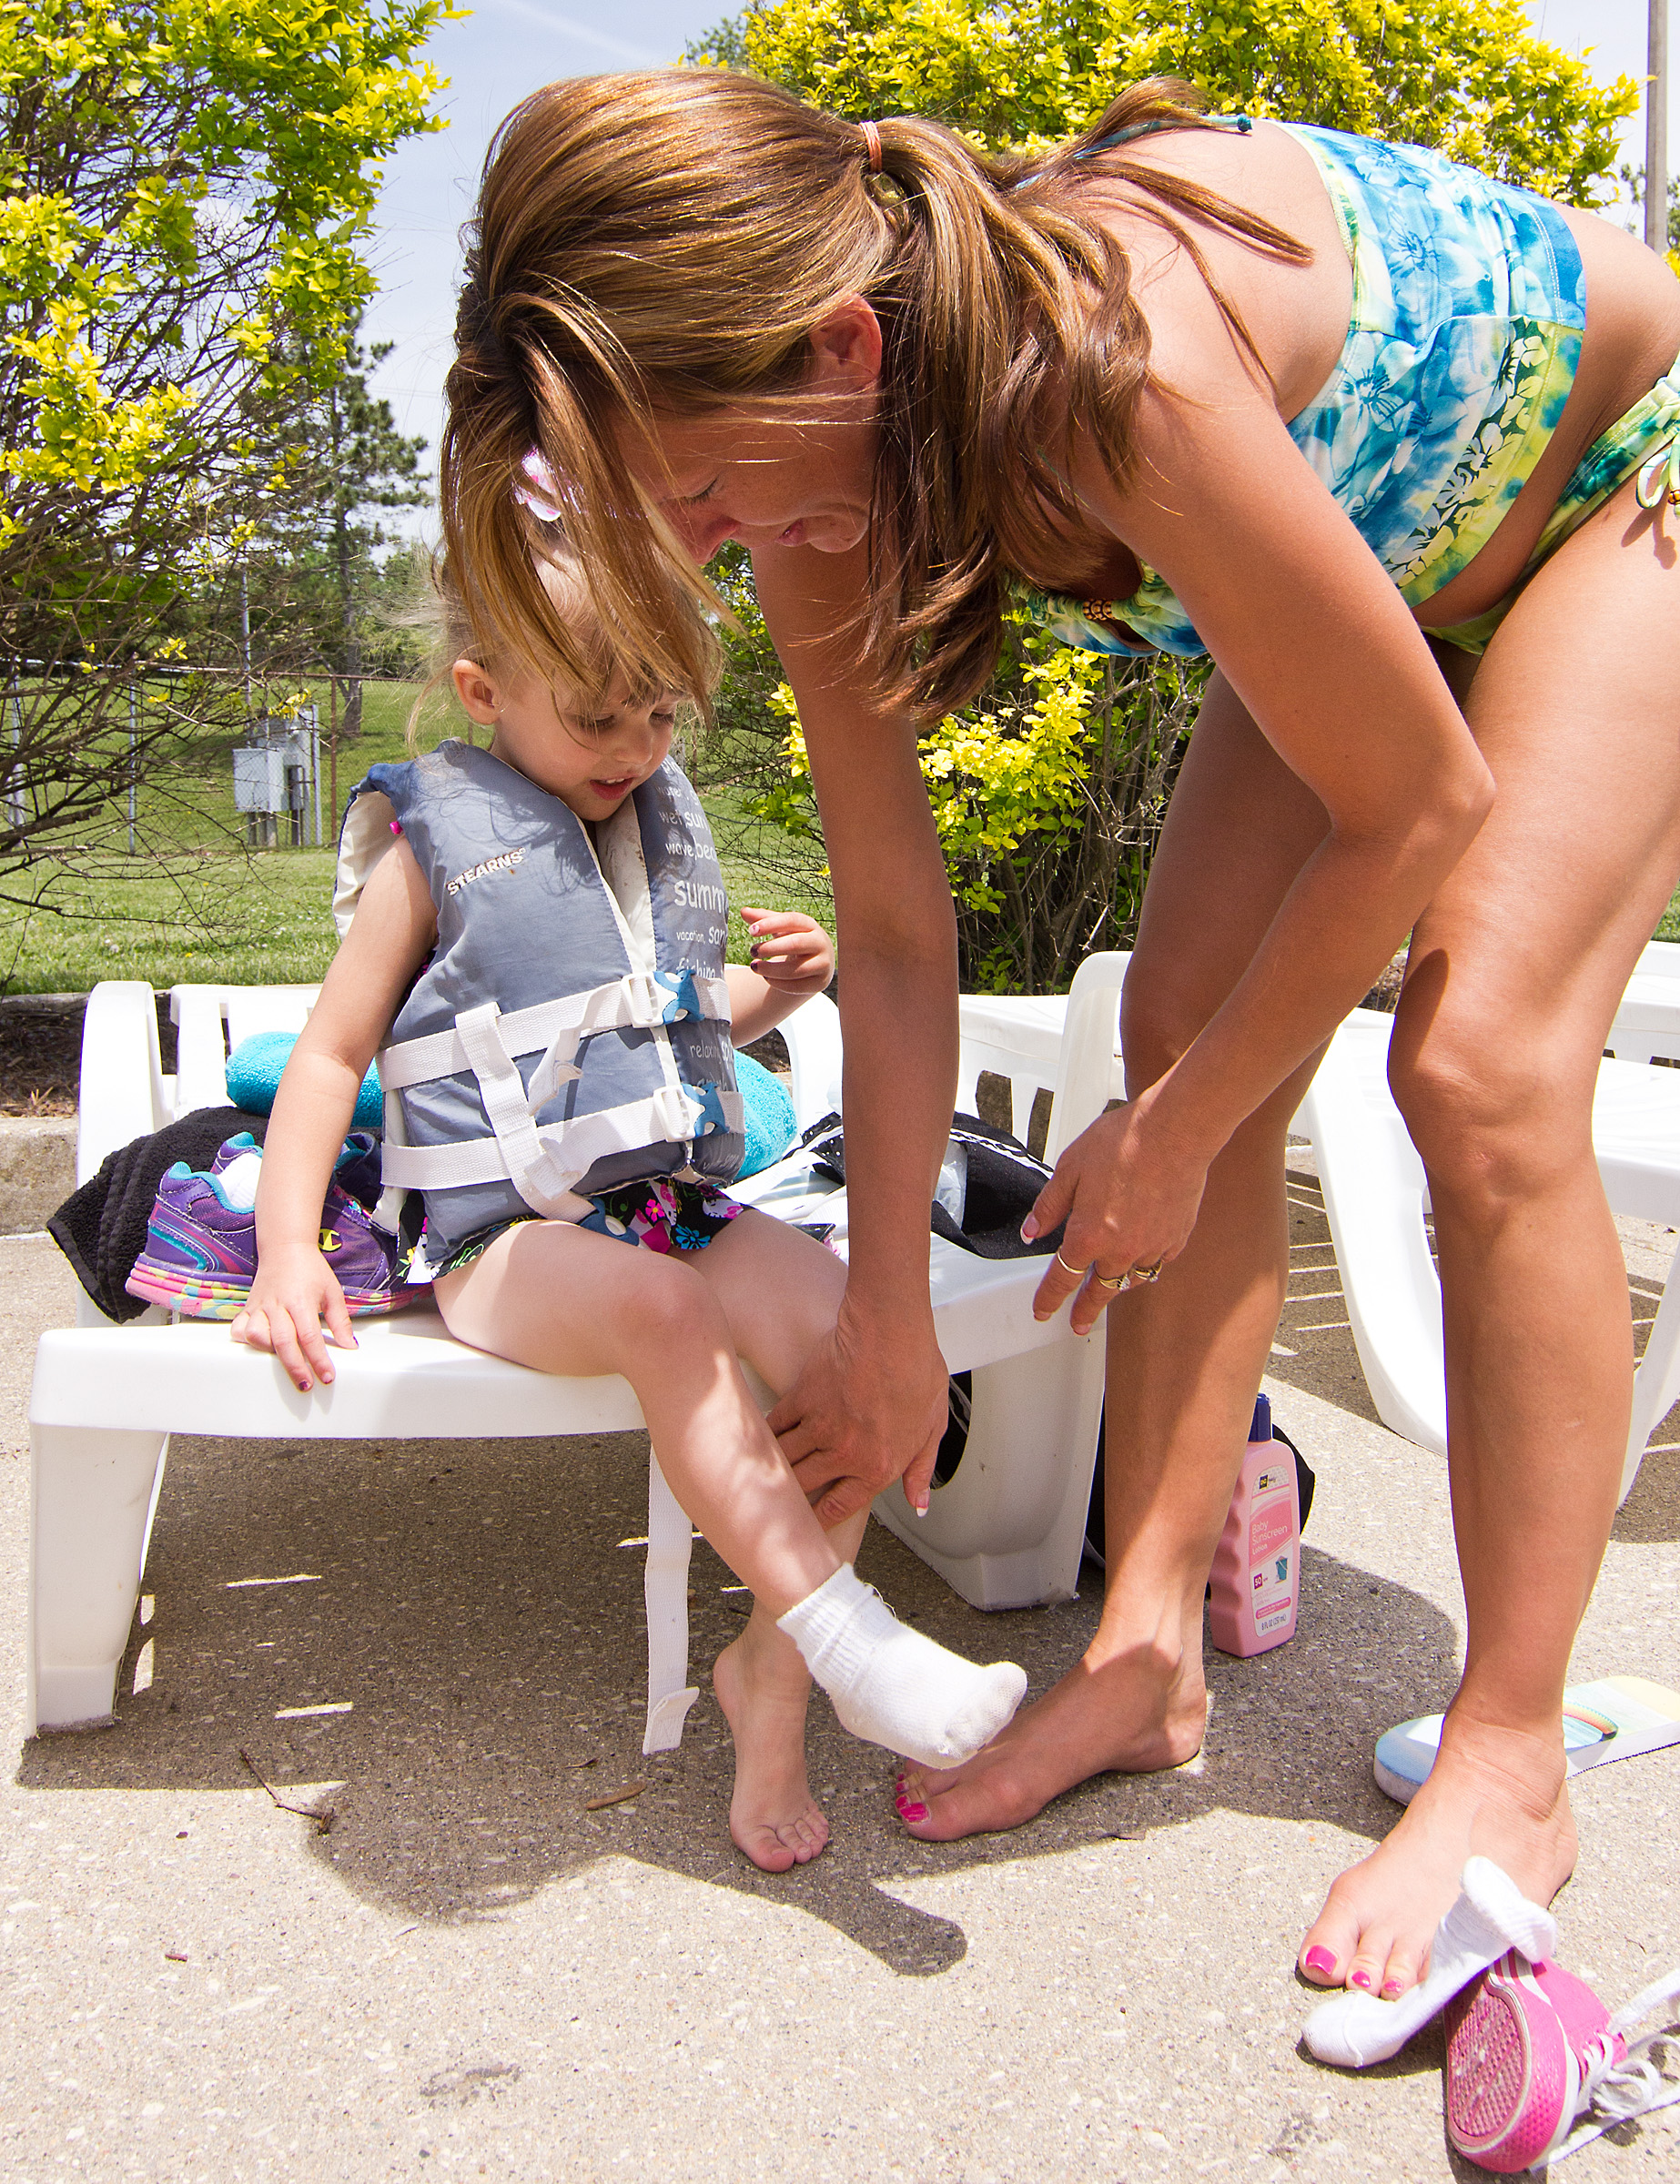 Jill Bundy, of Decatur, Ill., helps her daughter Miracle Schafer, 3, take off her socks before swimming on May 24 at Fairview Pool.